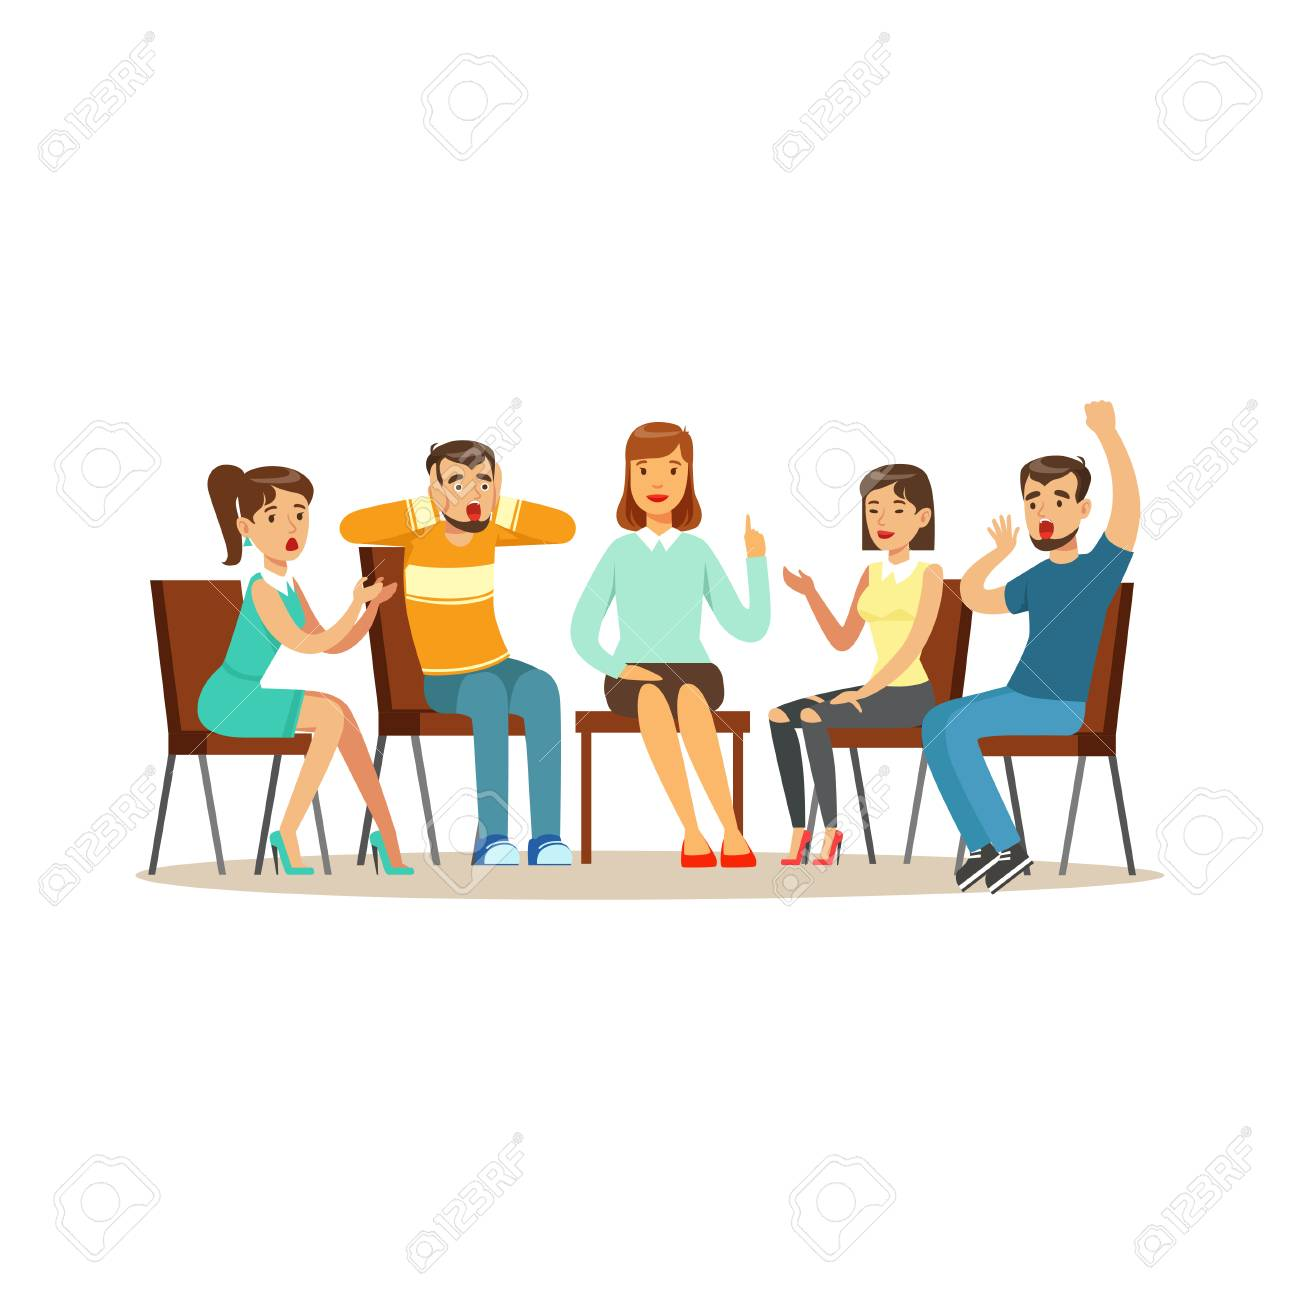 Support group therapy, psychologist counseling people with various phobias vector Illustration - 87668779